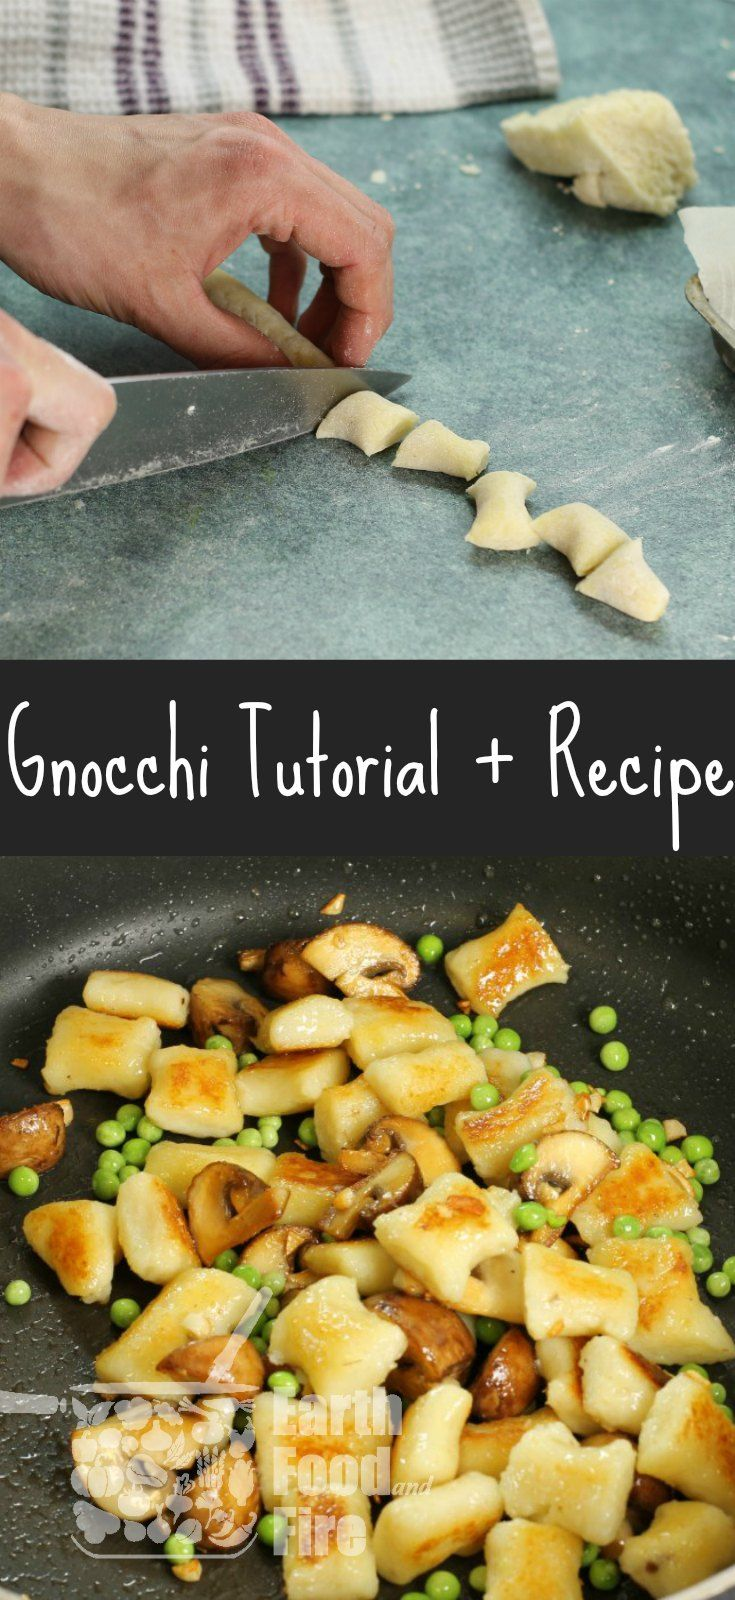 Making gnocchi is not as hard as it may appear. Learn how to make potato gnocchi at home, just like the pros and create a tasty dish with mushrooms and peas. via @earthfoodfire